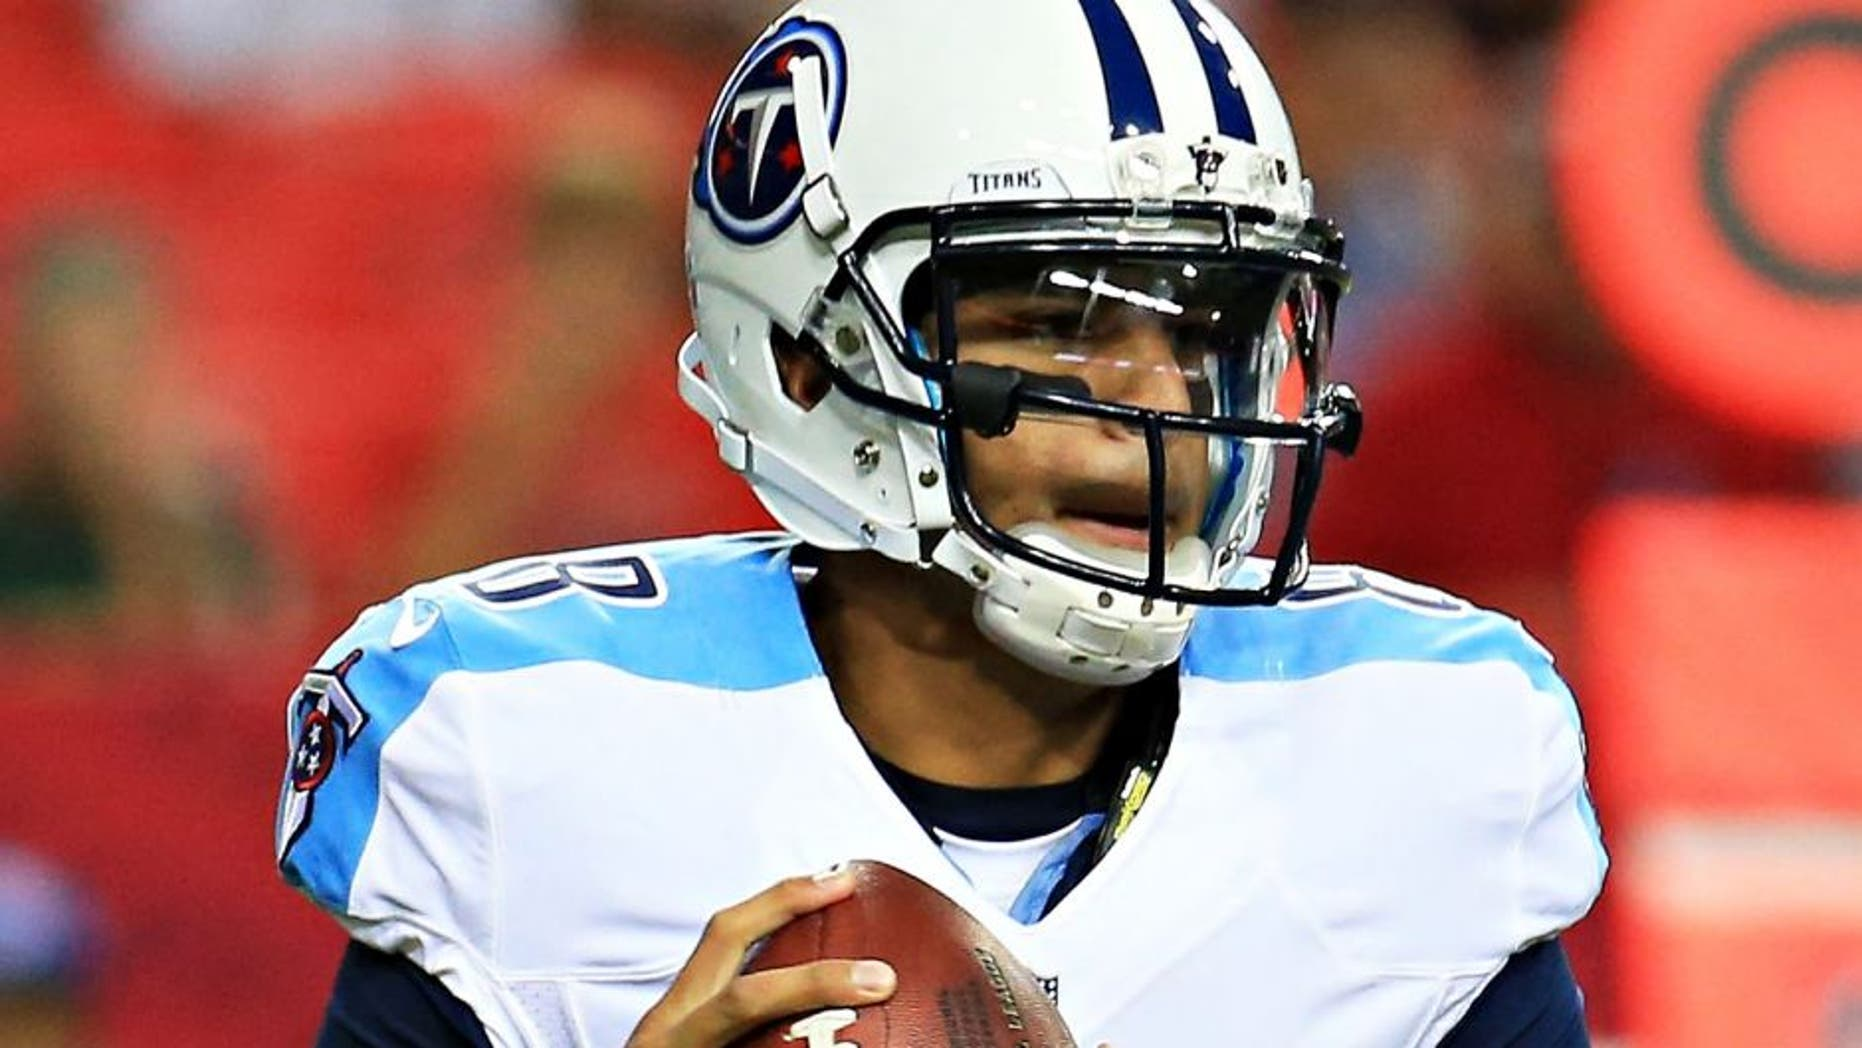 ATLANTA, GA - AUGUST 14: Marcus Mariota #8 of the Tennessee Titans rolls out on a pass play in the first half of a preseason game against the Atlanta Falcons at the Georgia Dome on August 14, 2015 in Atlanta, Georgia. (Photo by Daniel Shirey/Getty Images)